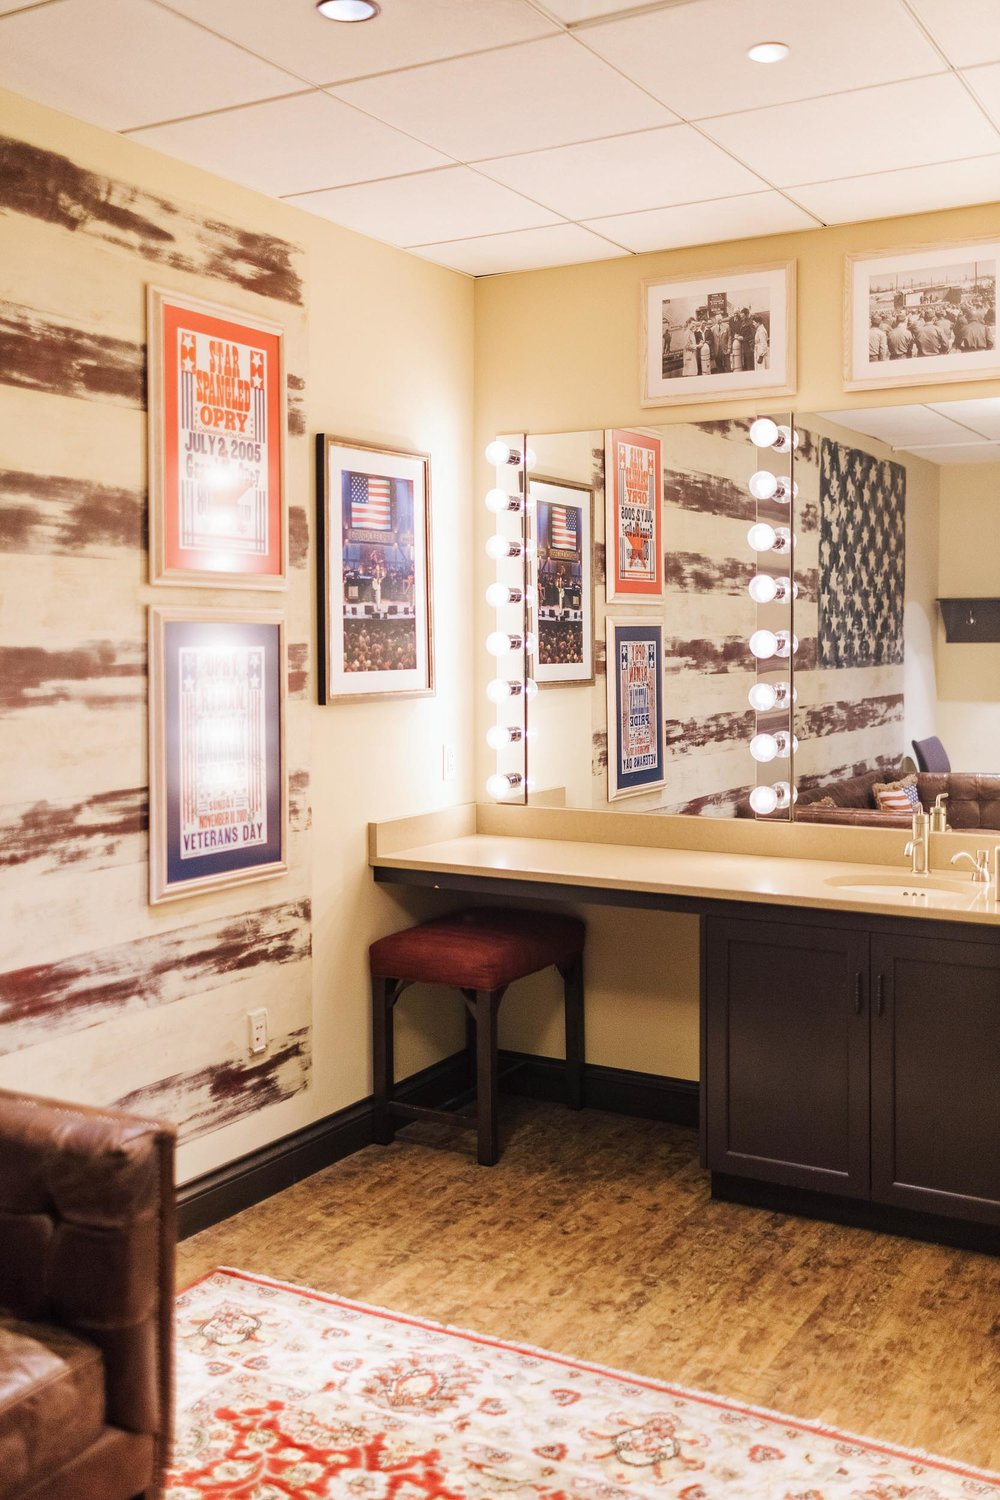 The stars and stripes themed dressing room backstage at the Opry